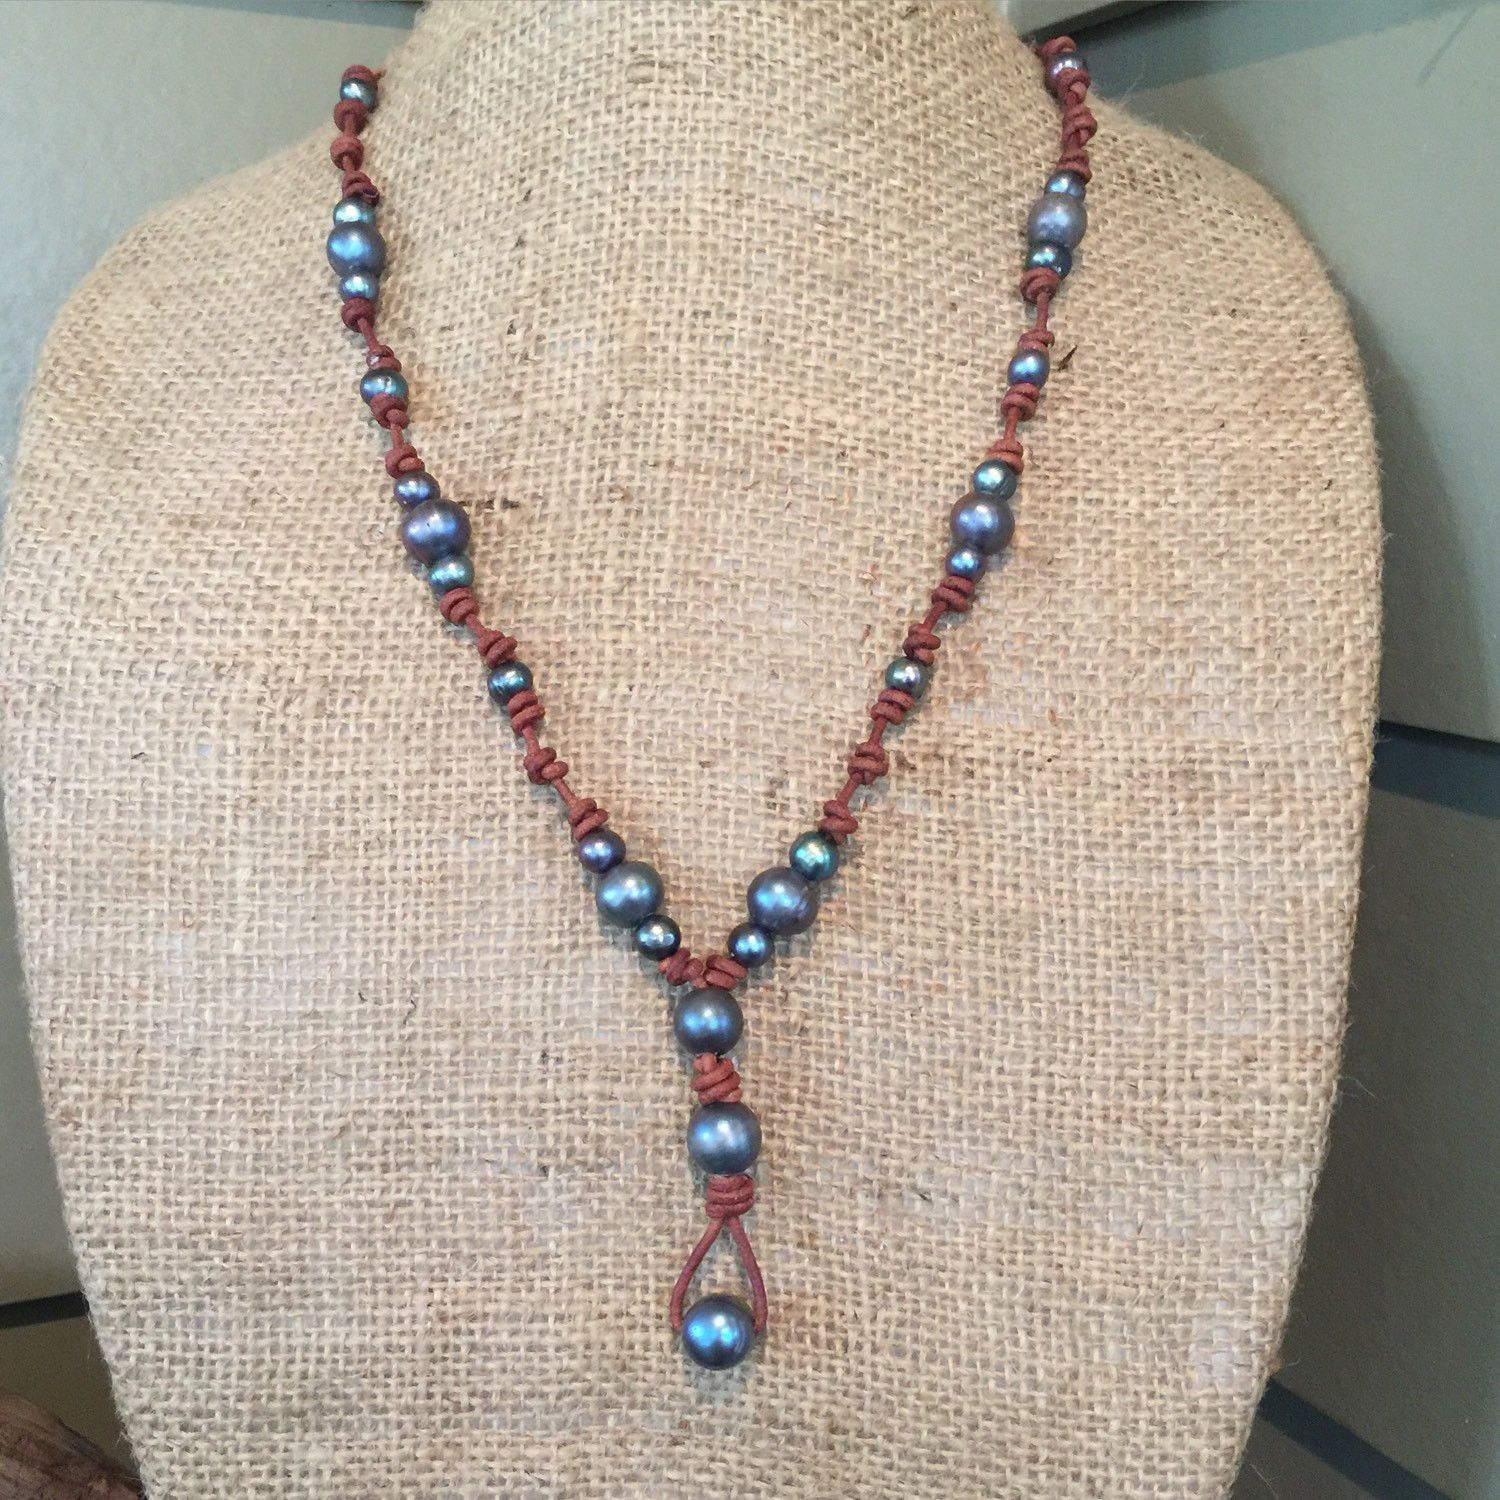 gift ayla hole round s product prev of pearls a bead and jewelry peacock image blue boutique originals big next